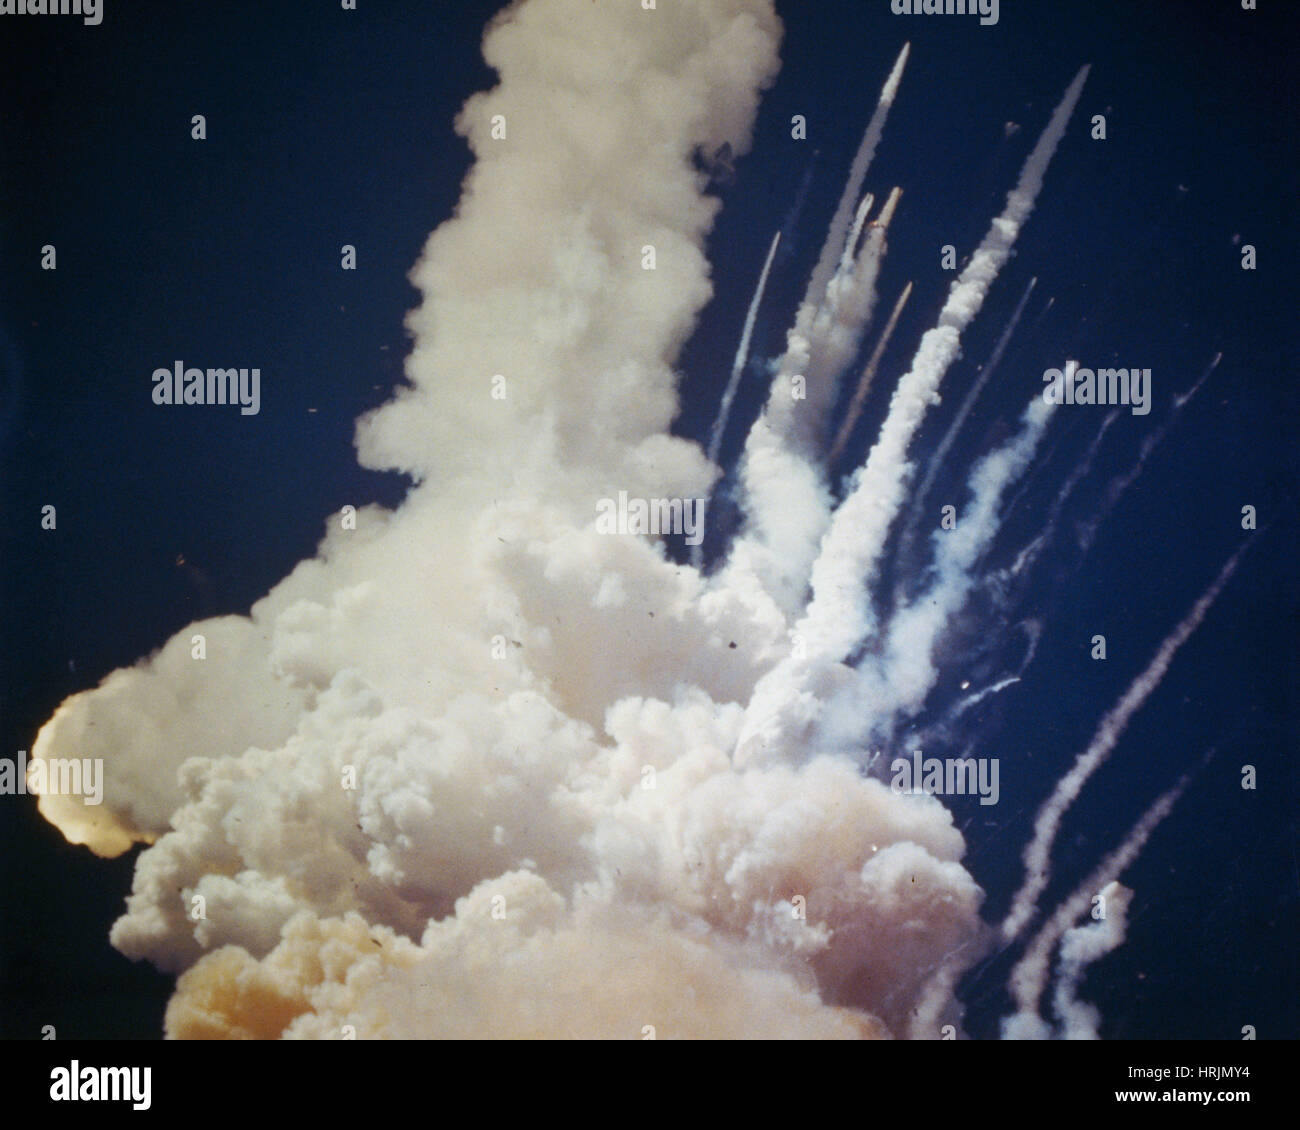 Space Shuttle Challenger Disaster, 1986 - Stock Image